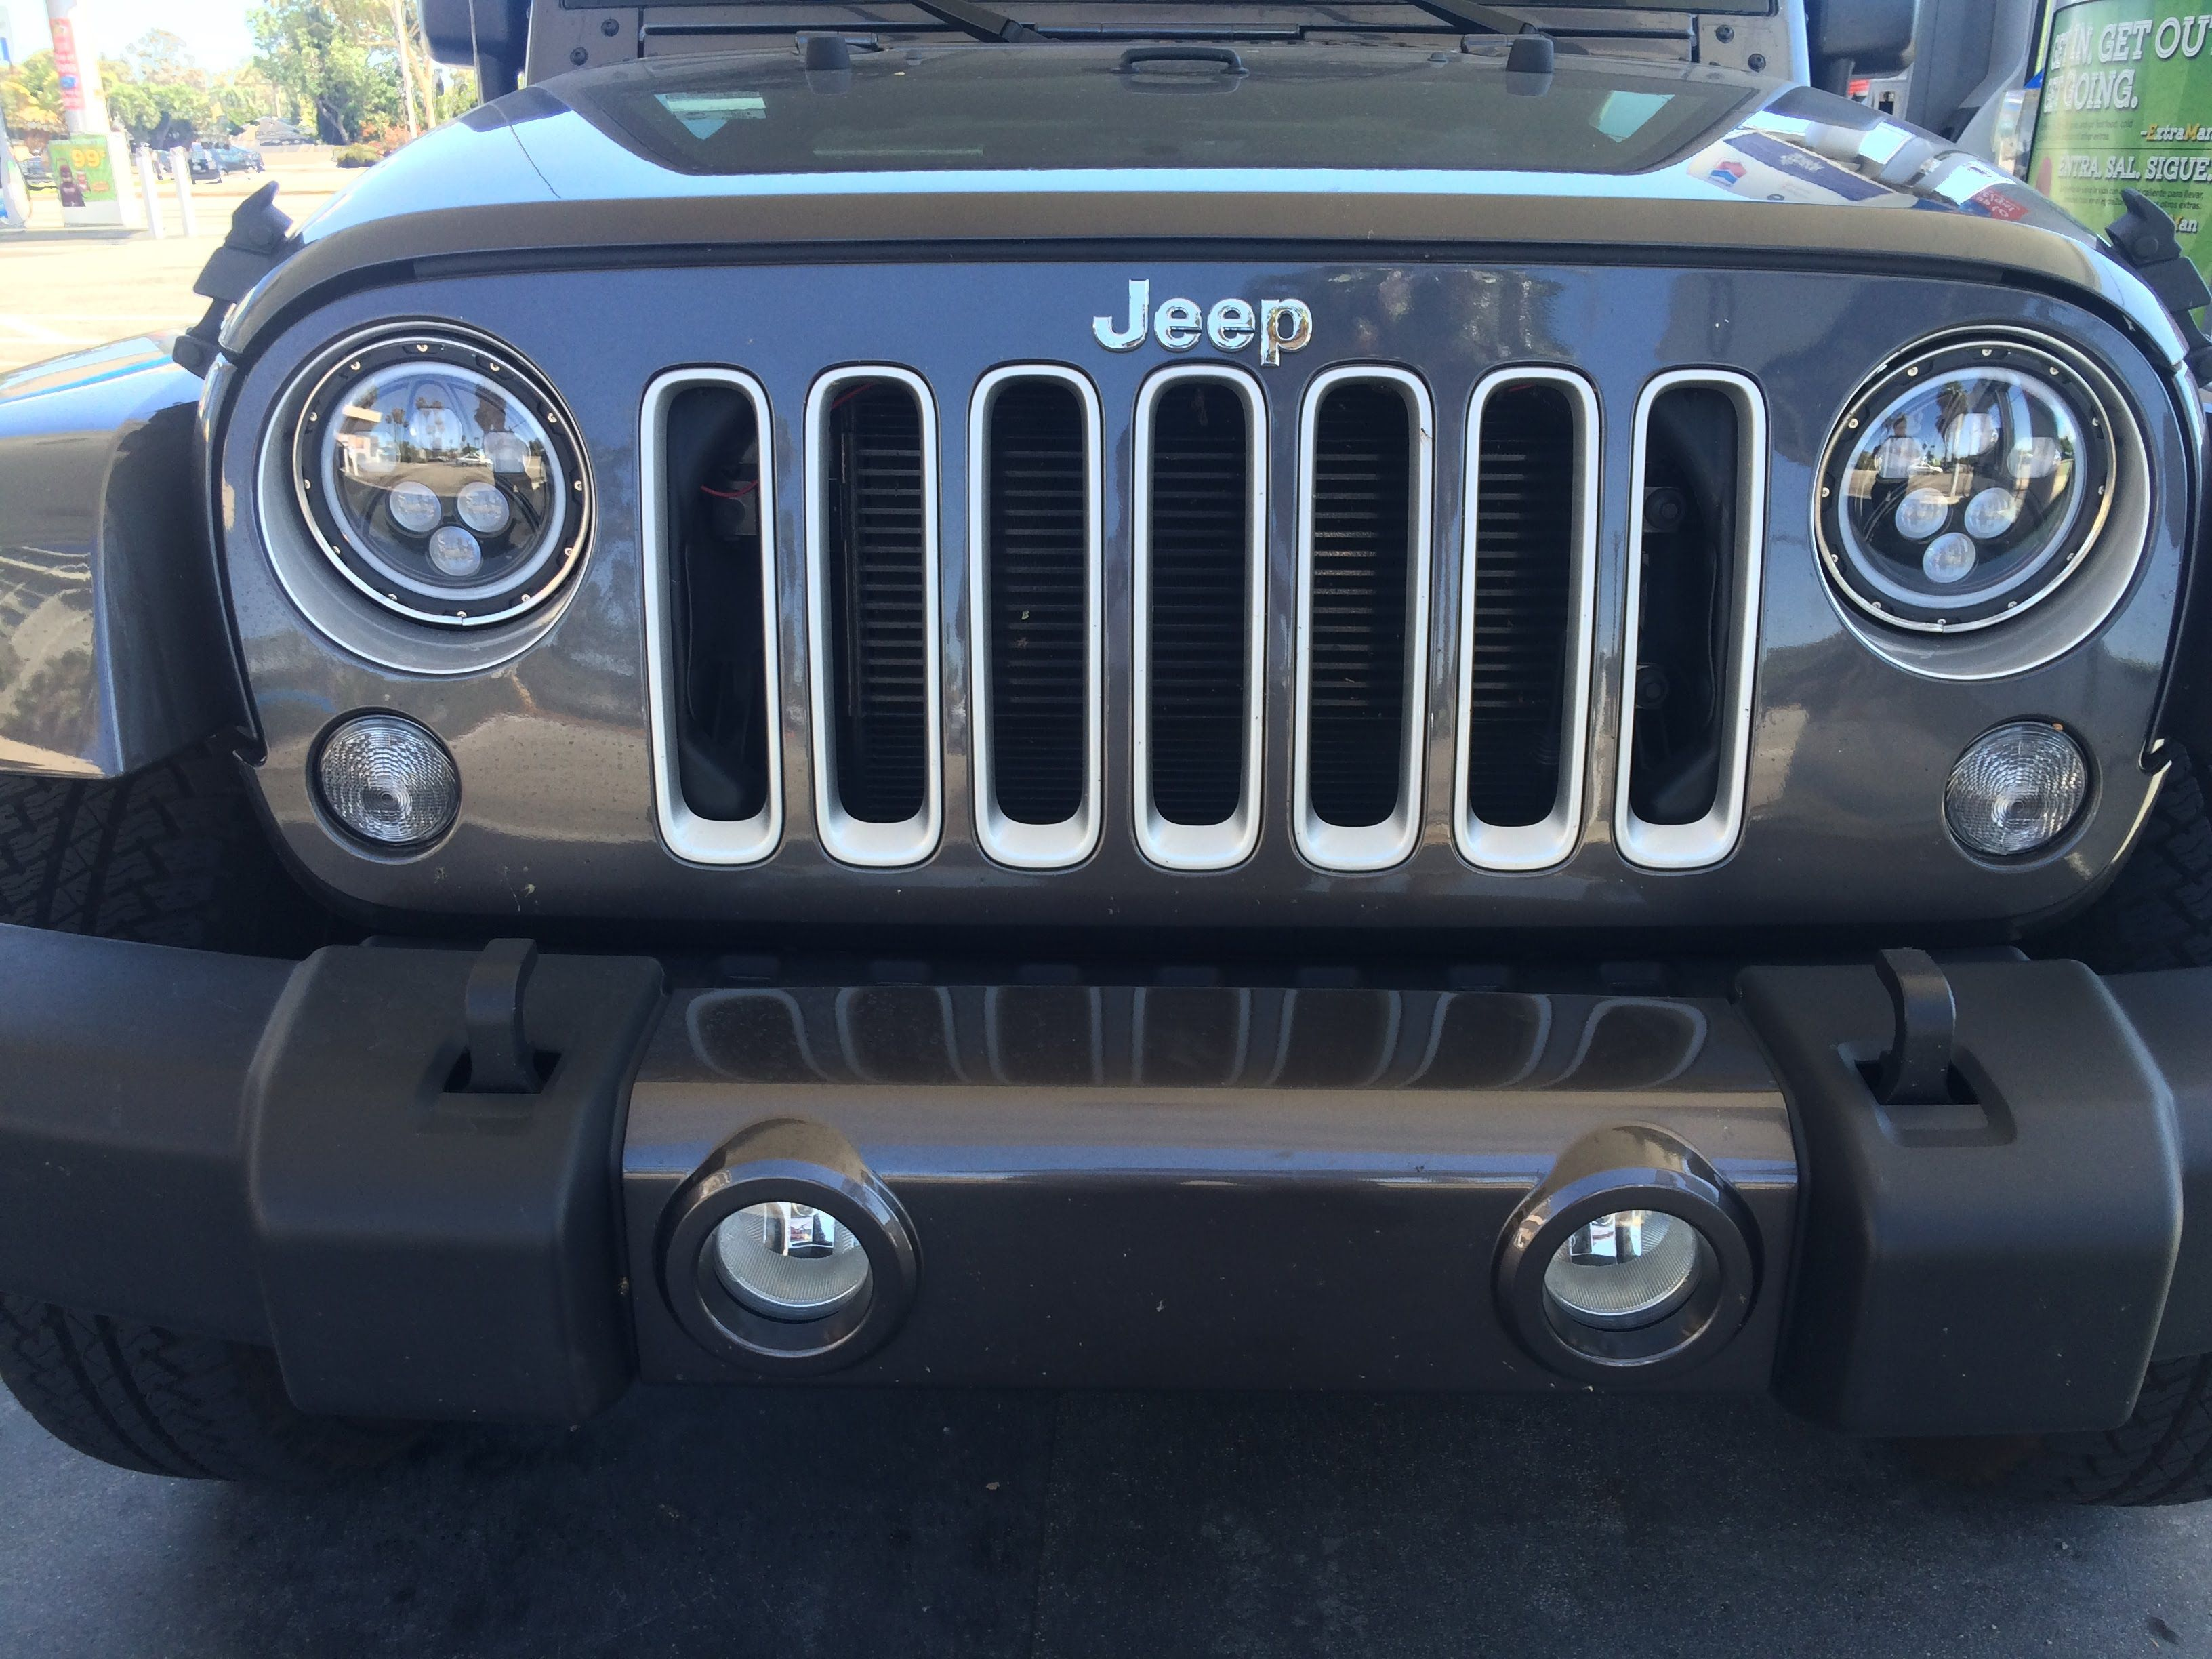 Led Halo Headlight Upgrade On A Jeep Jk